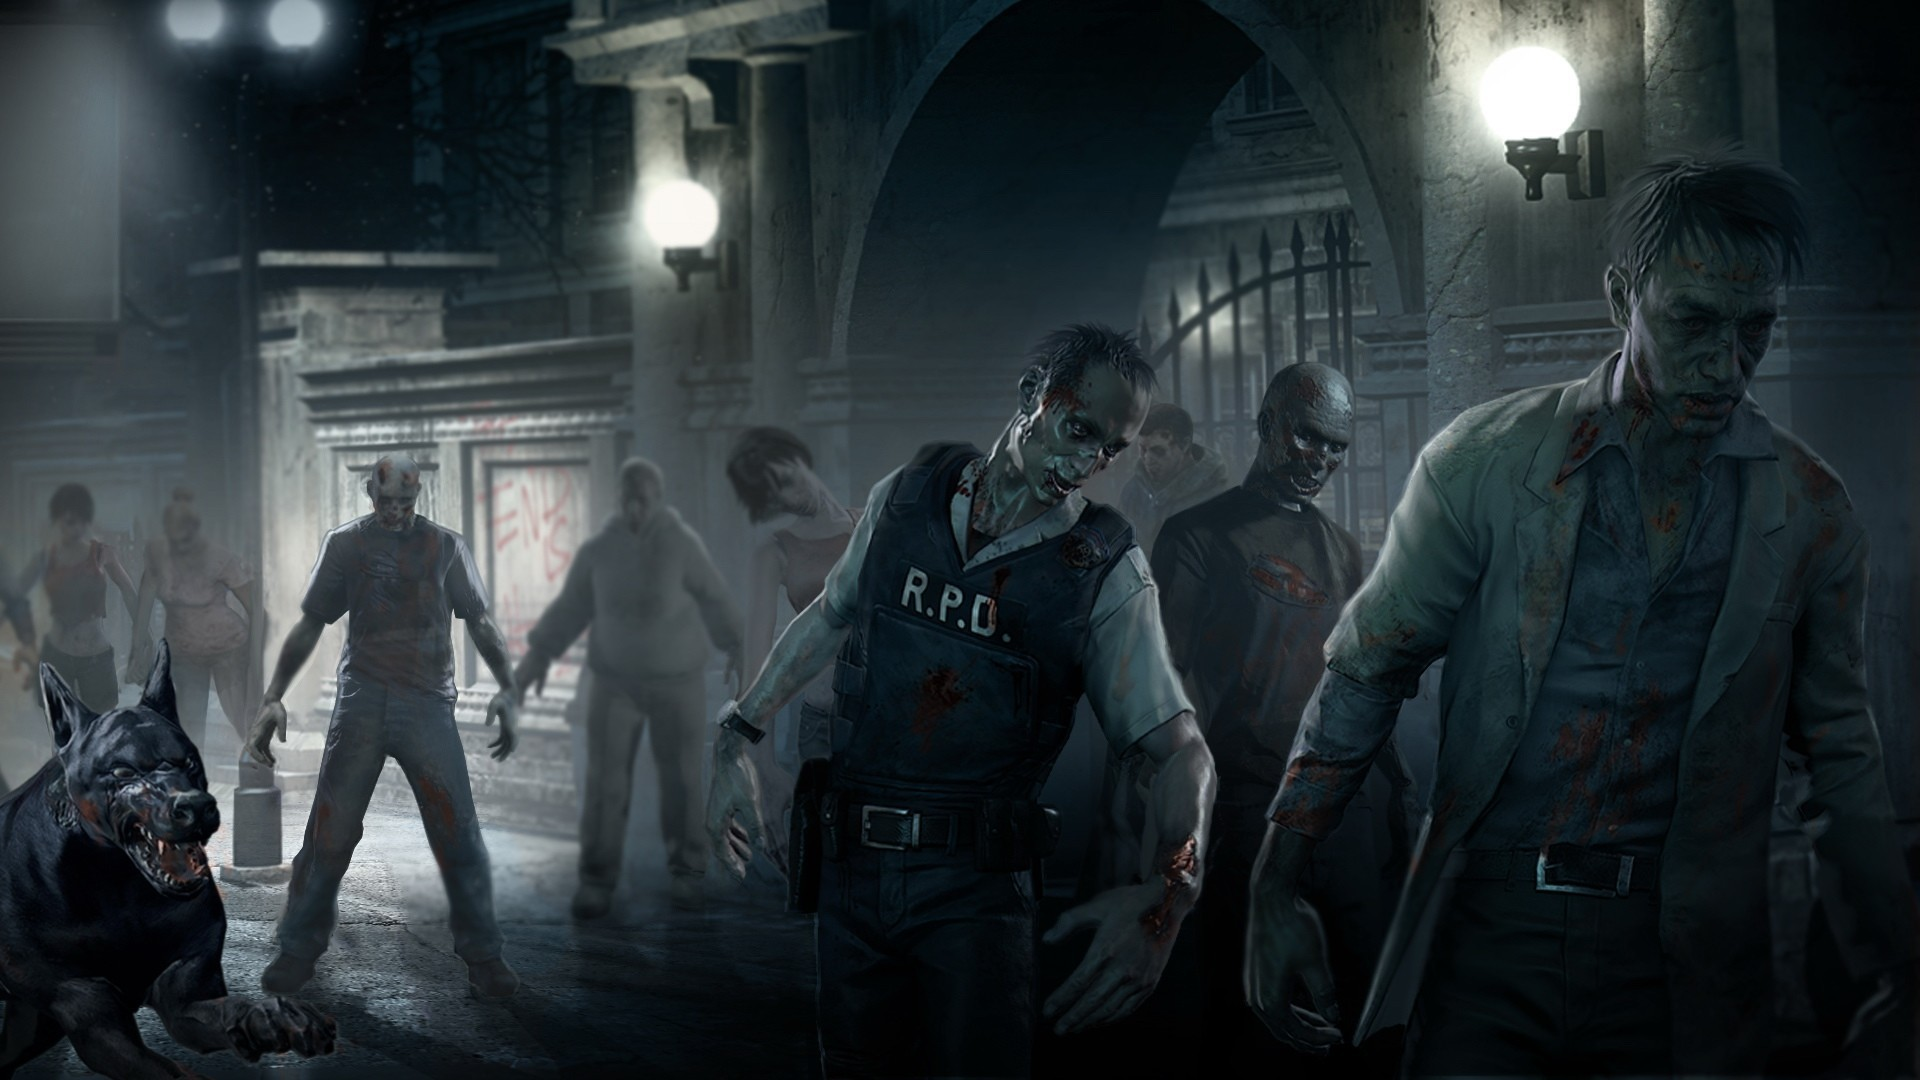 1920x1080 ... 505 Zombie HD Wallpapers | Backgrounds - Wallpaper Abyss ...